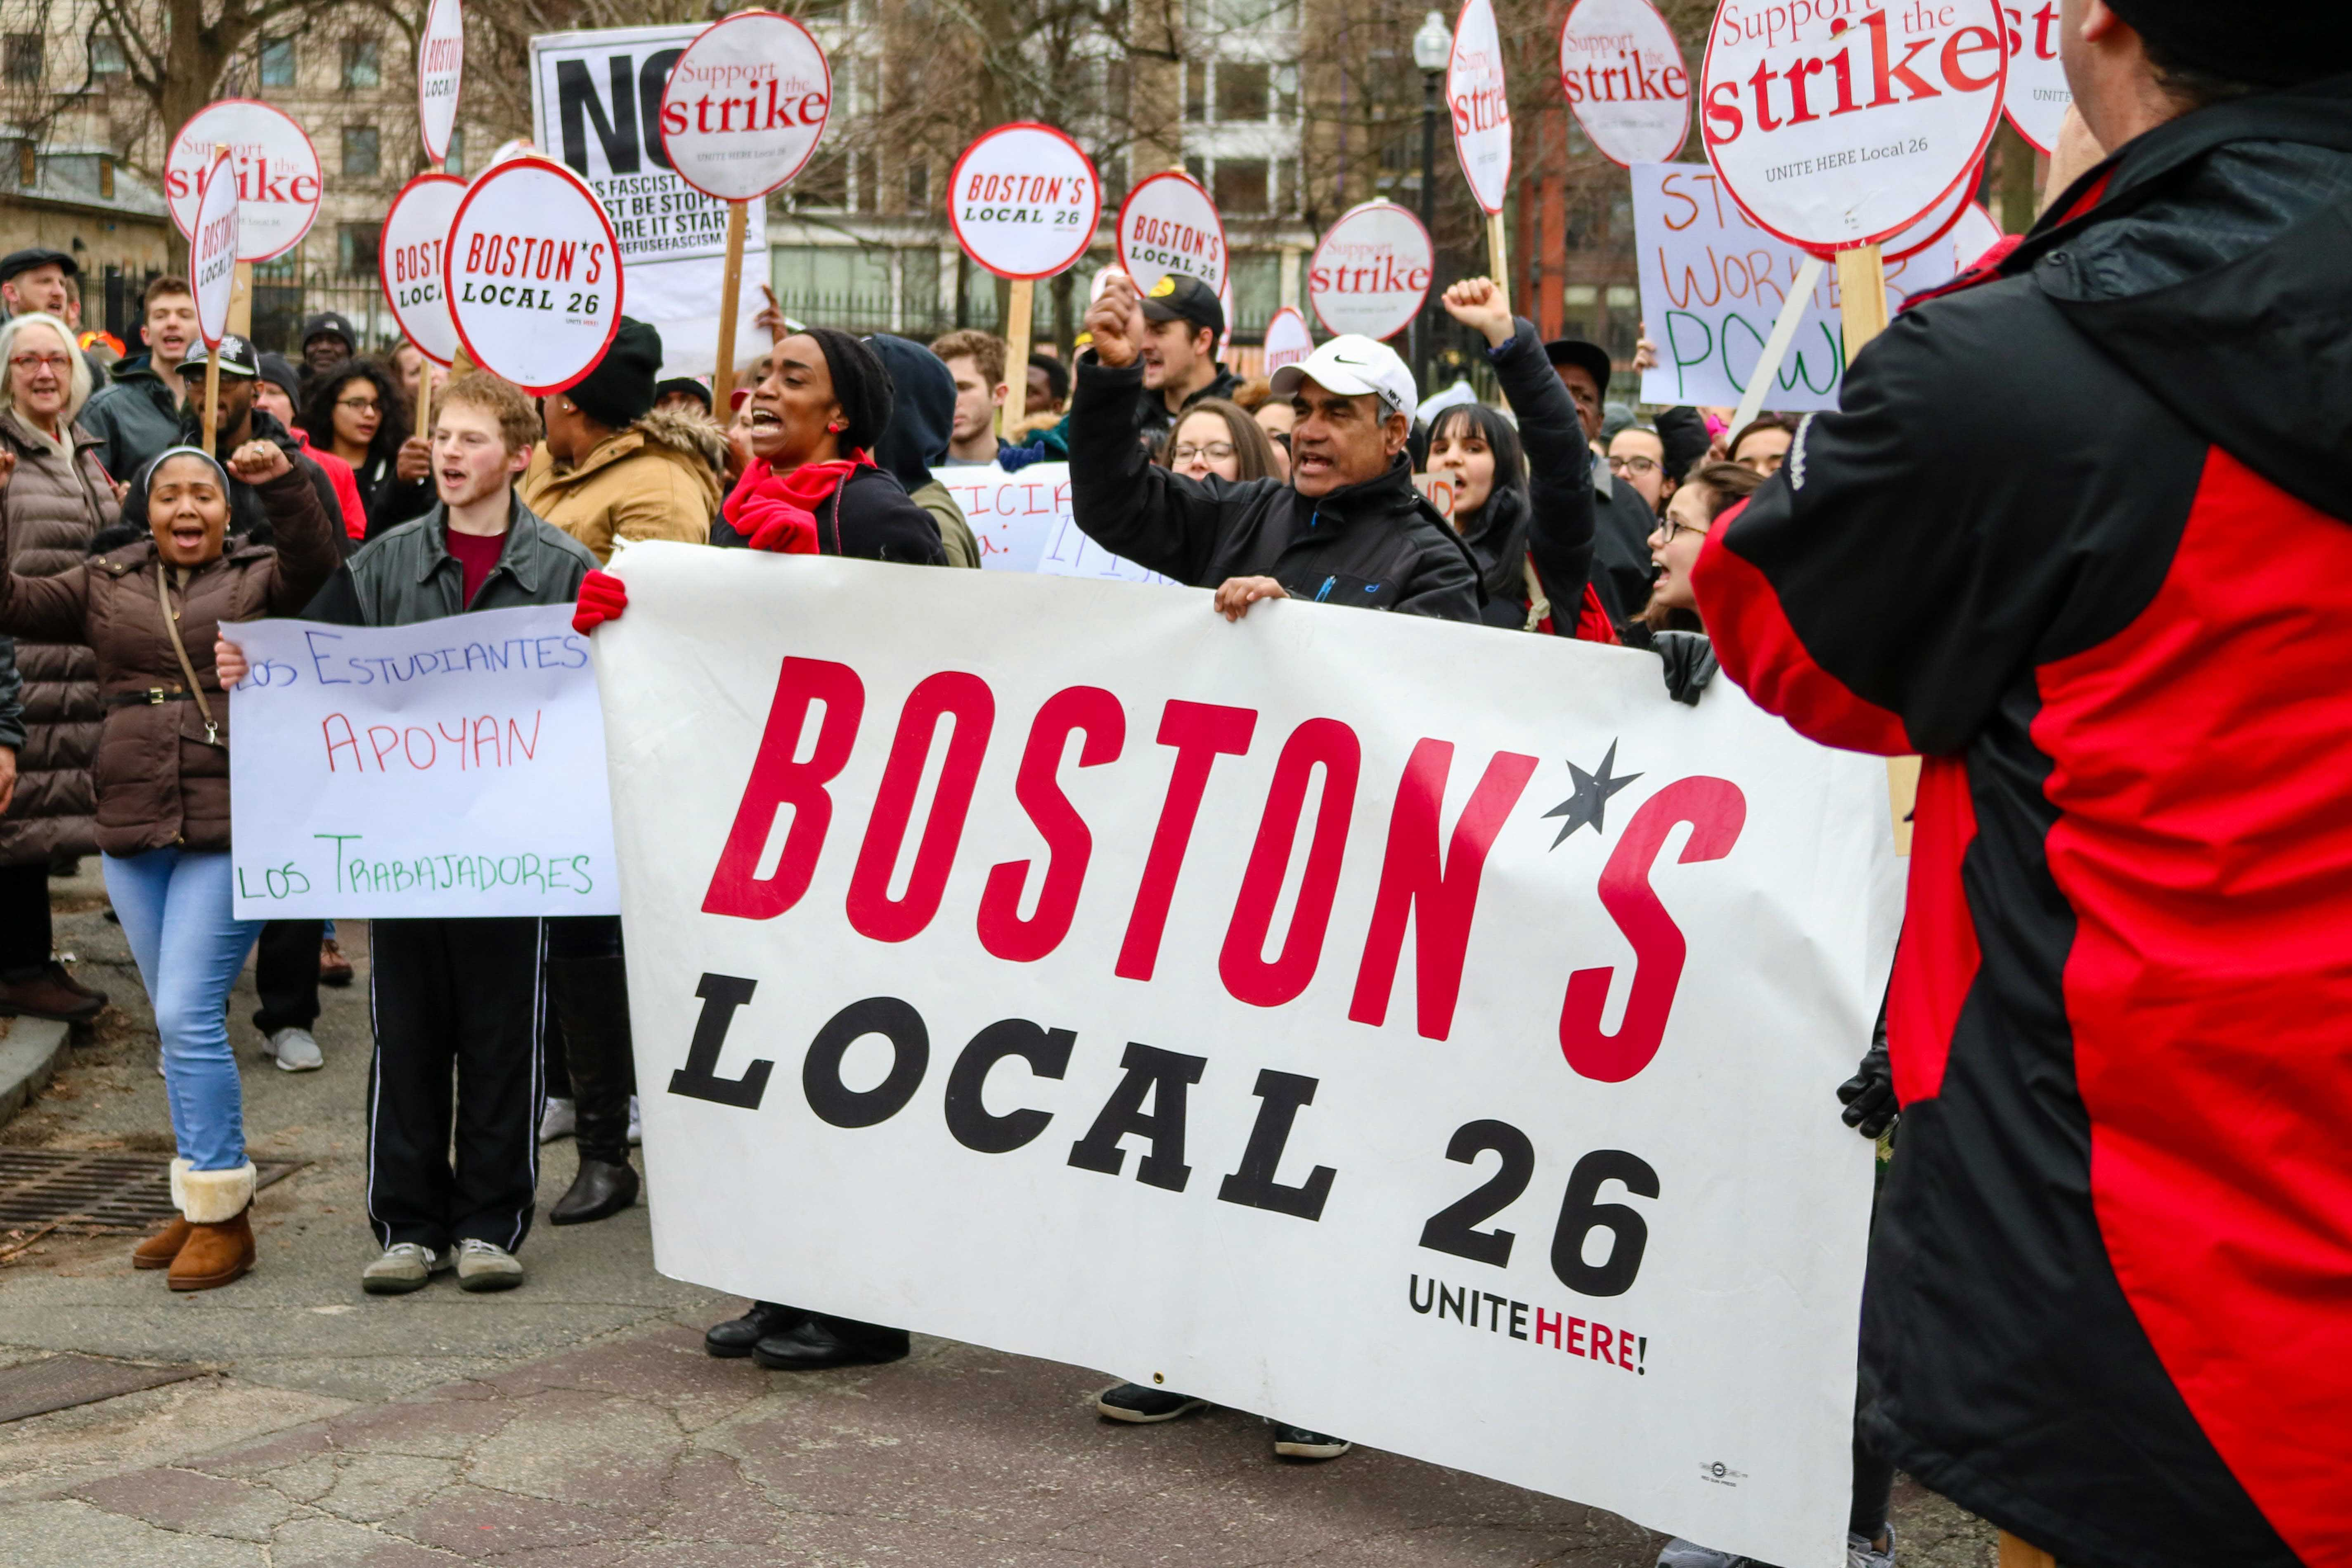 Boston%27s+Local+26+rallies+at+the+Commons+to+show+their+support+for+worker%27s+rights.